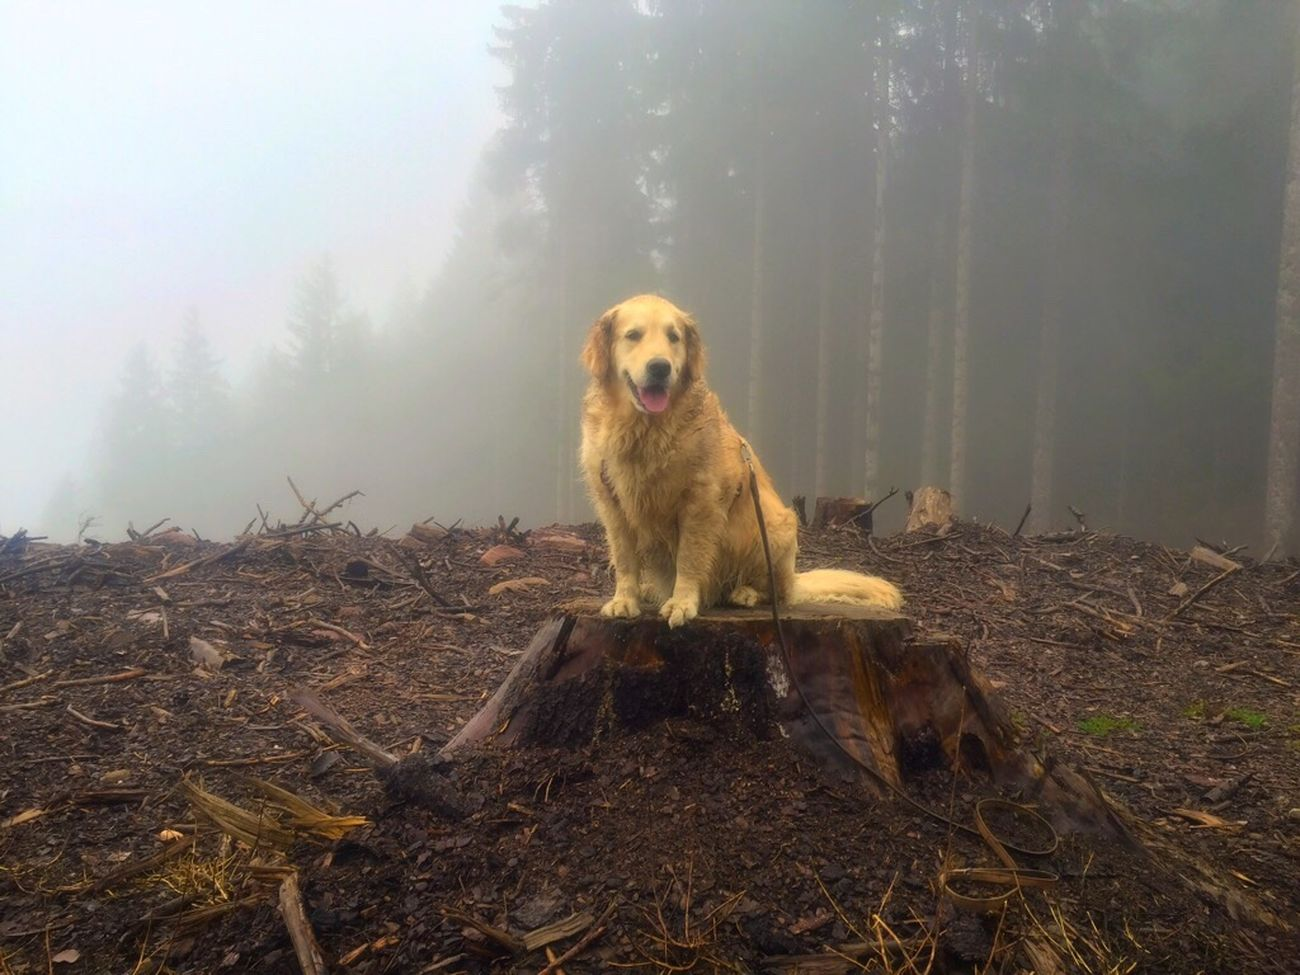 """""""The Dog is on the Tree""""... Domestic Animals Animal Themes Pets Dog Golden Retriever Nature November Mountainlife Trekking Non-urban Scene Me&MyBestfriend Me&mydog Mygoldendog Goldenretriever Golden Retriever No People Tranquil Scene Outdoors Doggy Love Dog Love Dogslife"""